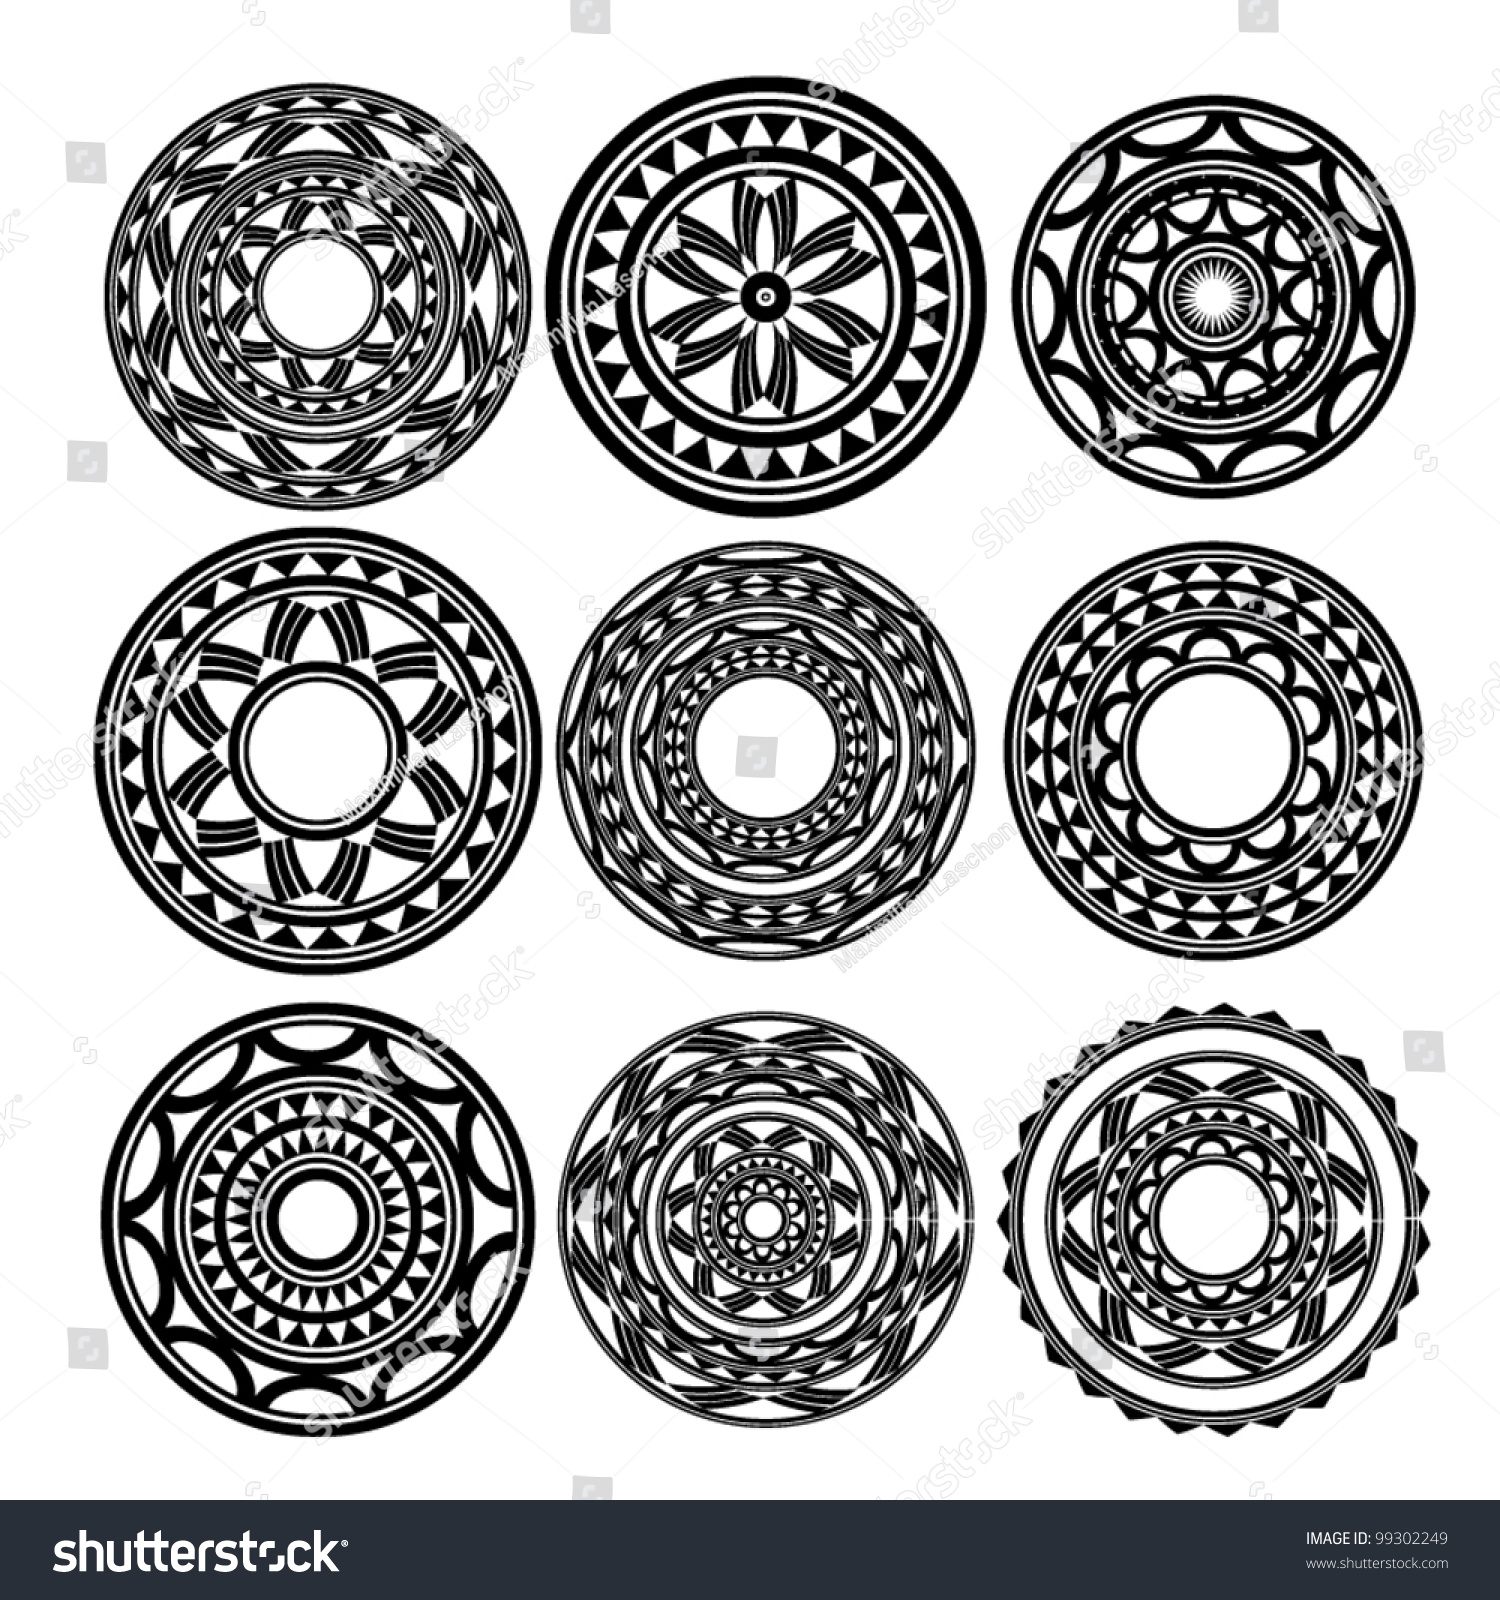 maori polynesian style tattoo stock vector 99302249 shutterstock. Black Bedroom Furniture Sets. Home Design Ideas